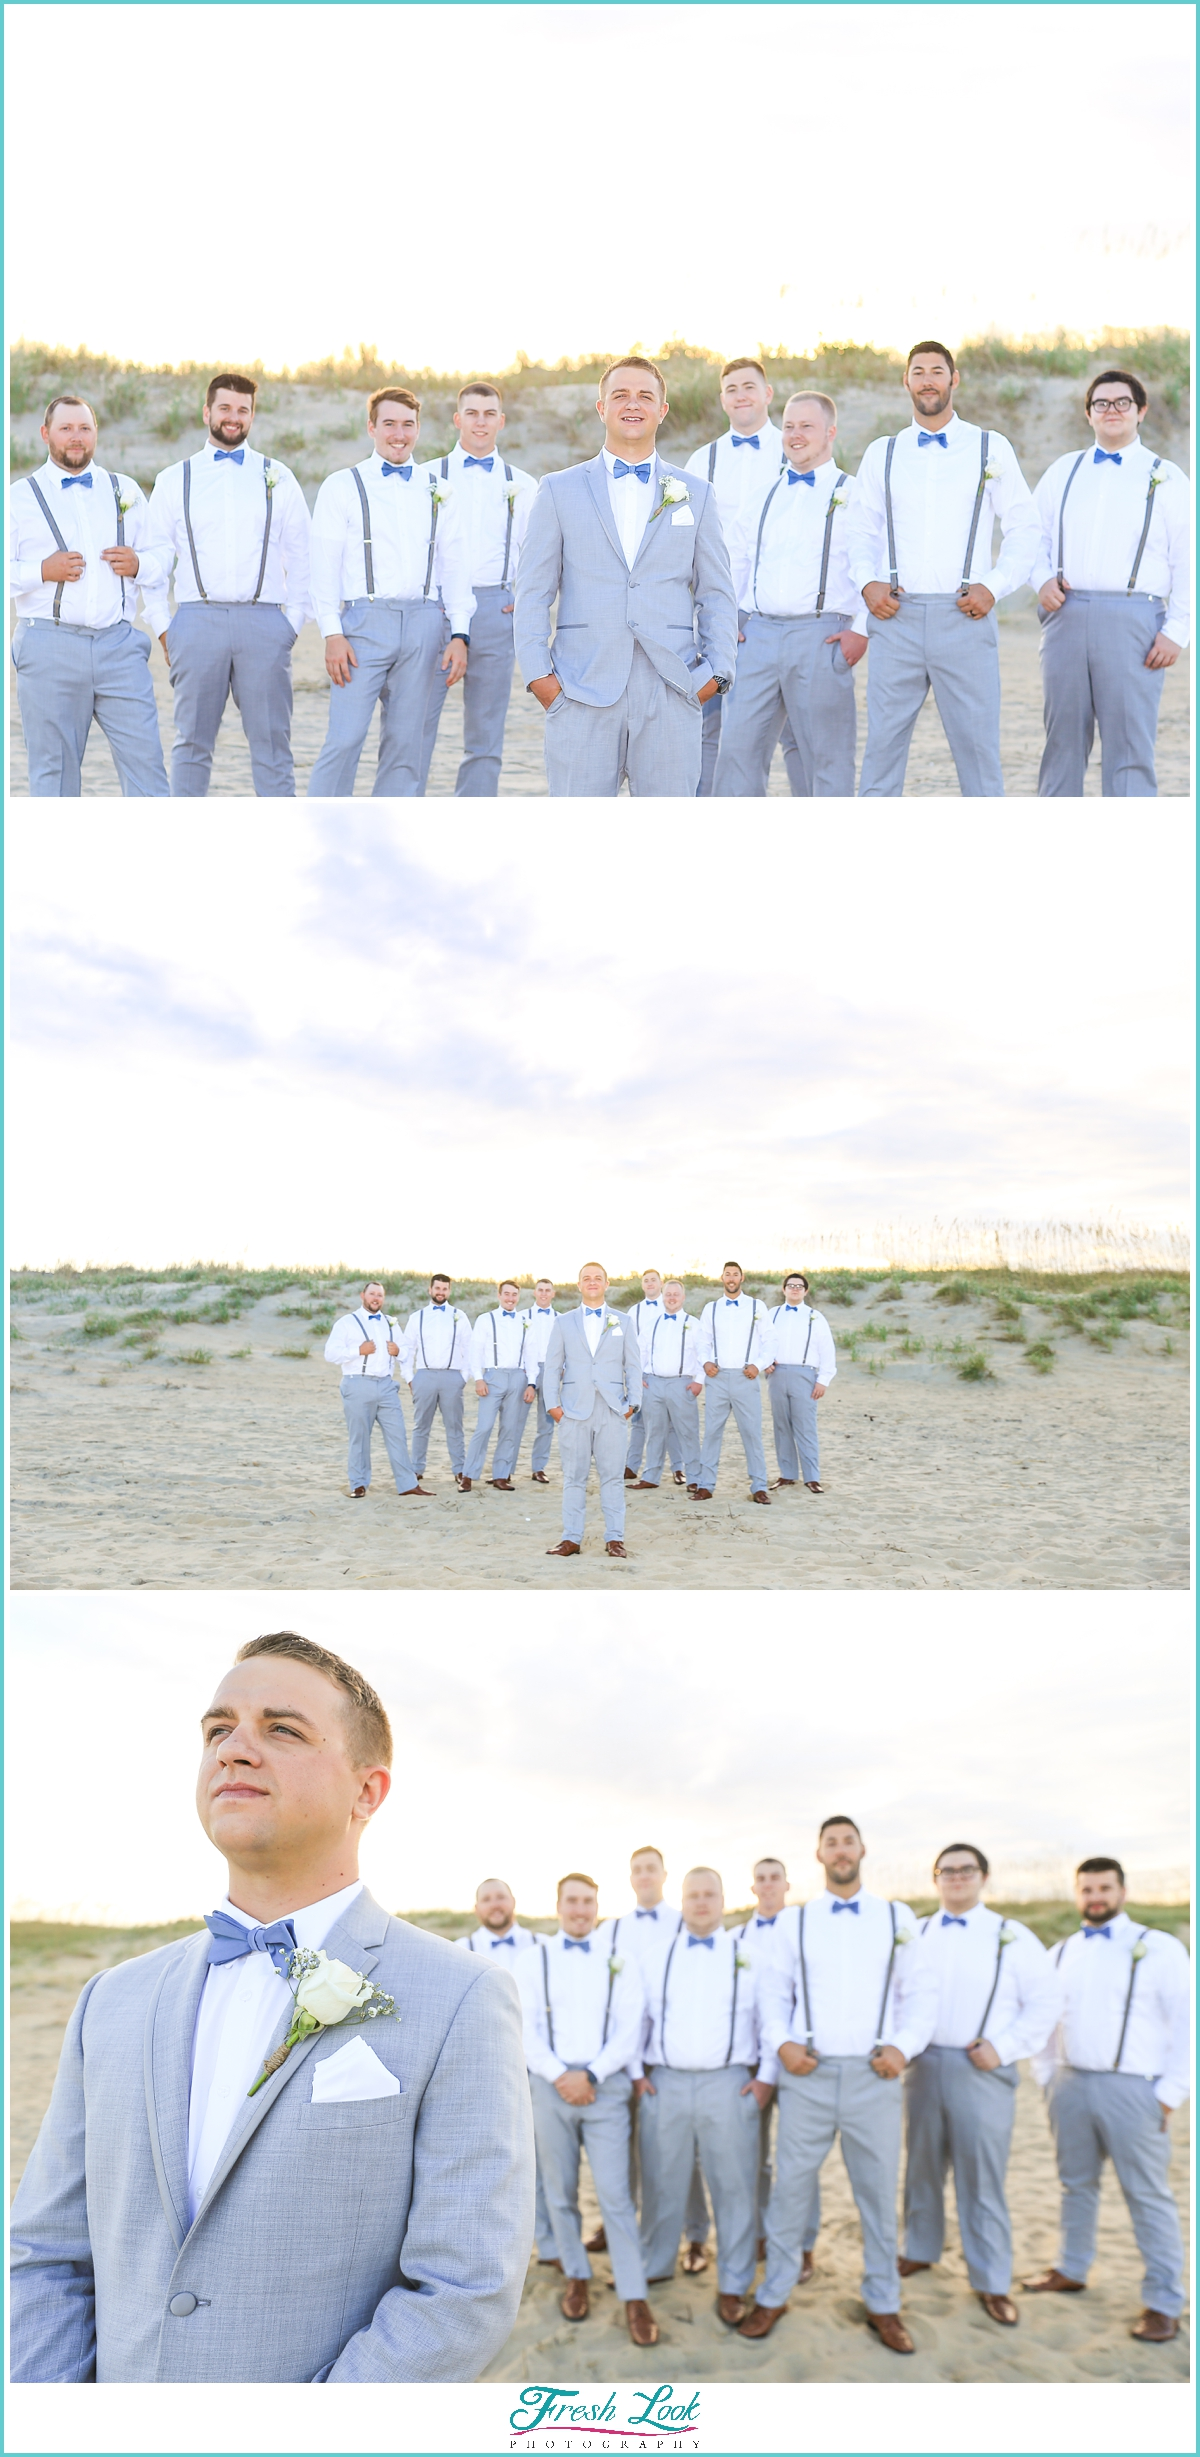 handsome groom and groomsmen